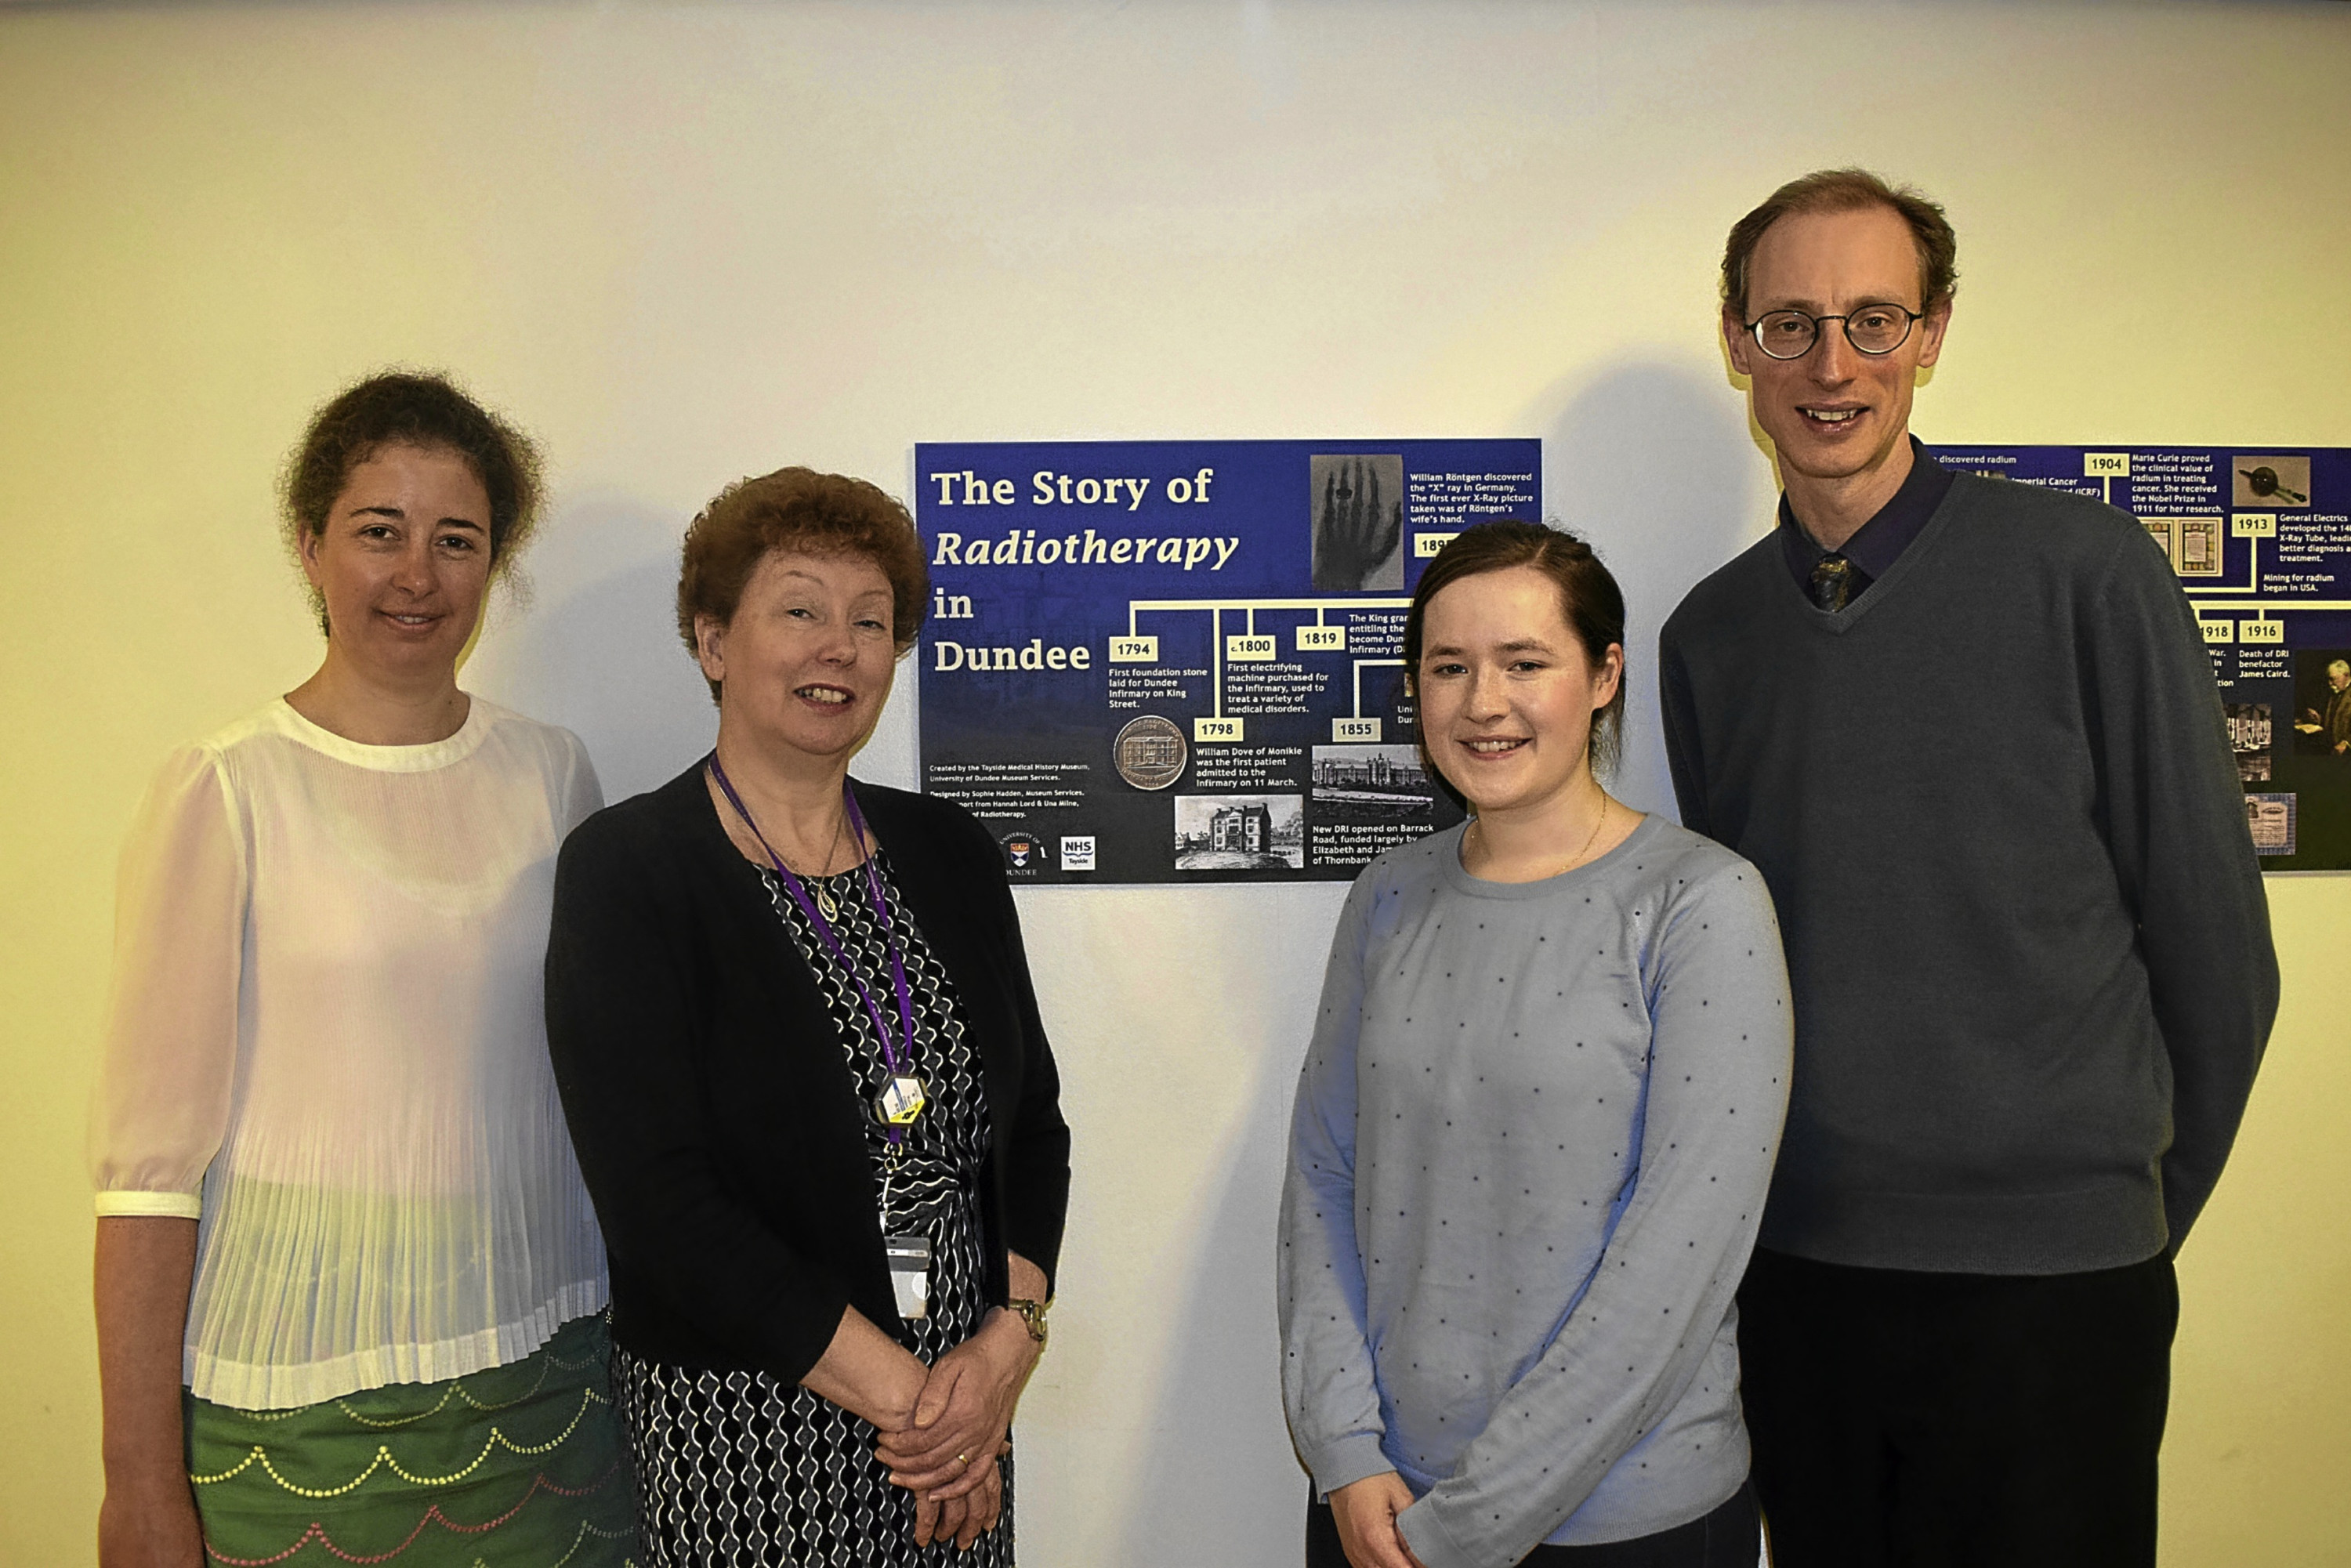 From left: Dr Hannah Lord, Una Milne, Matthew Jarron, and Sophie Hadden.